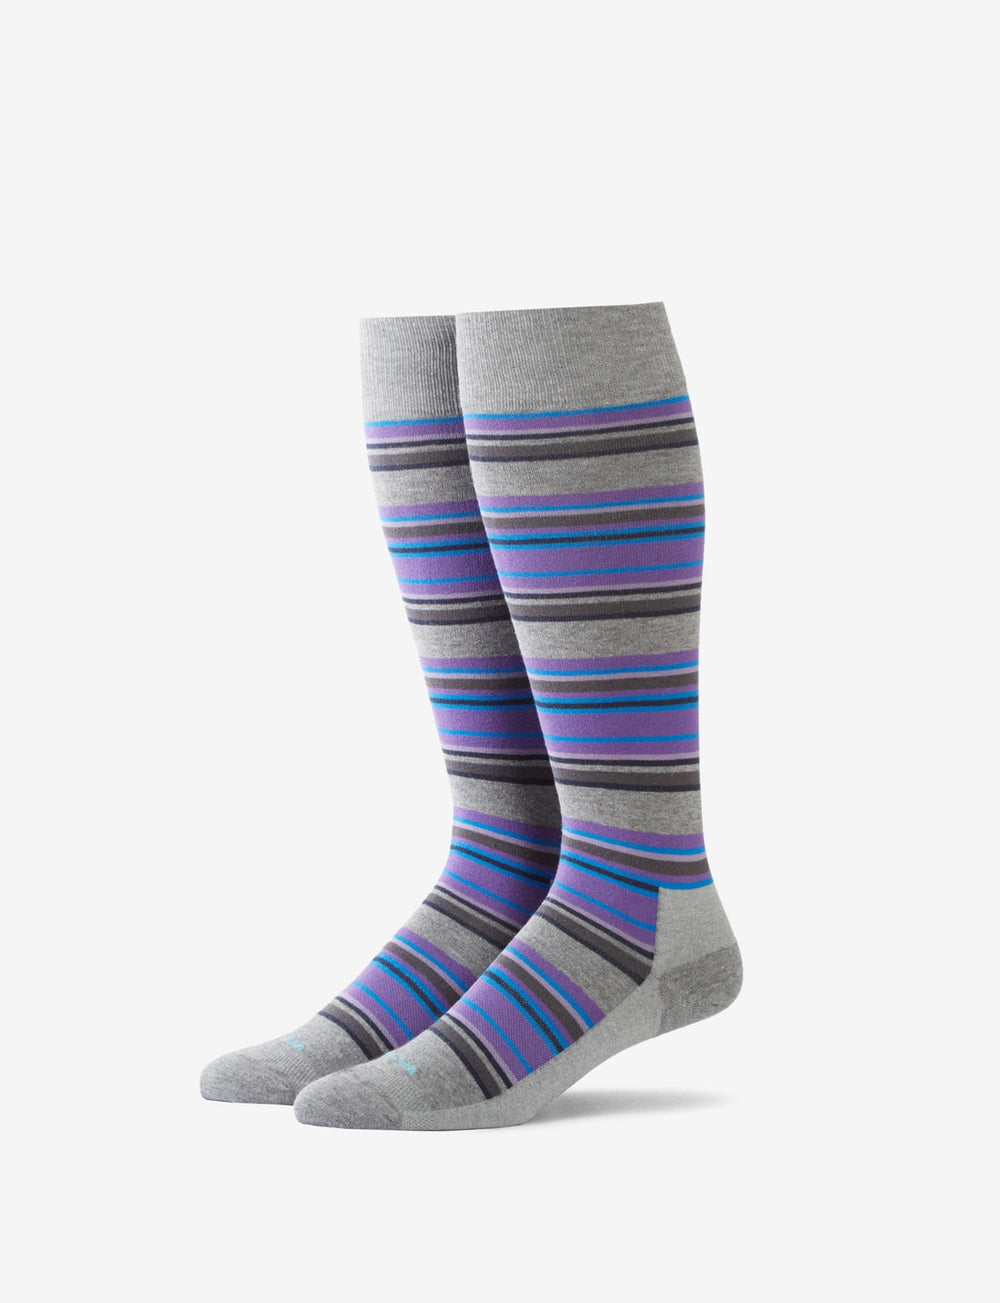 Micro Multi-Stripe Stay-Up Dress Sock Details Image